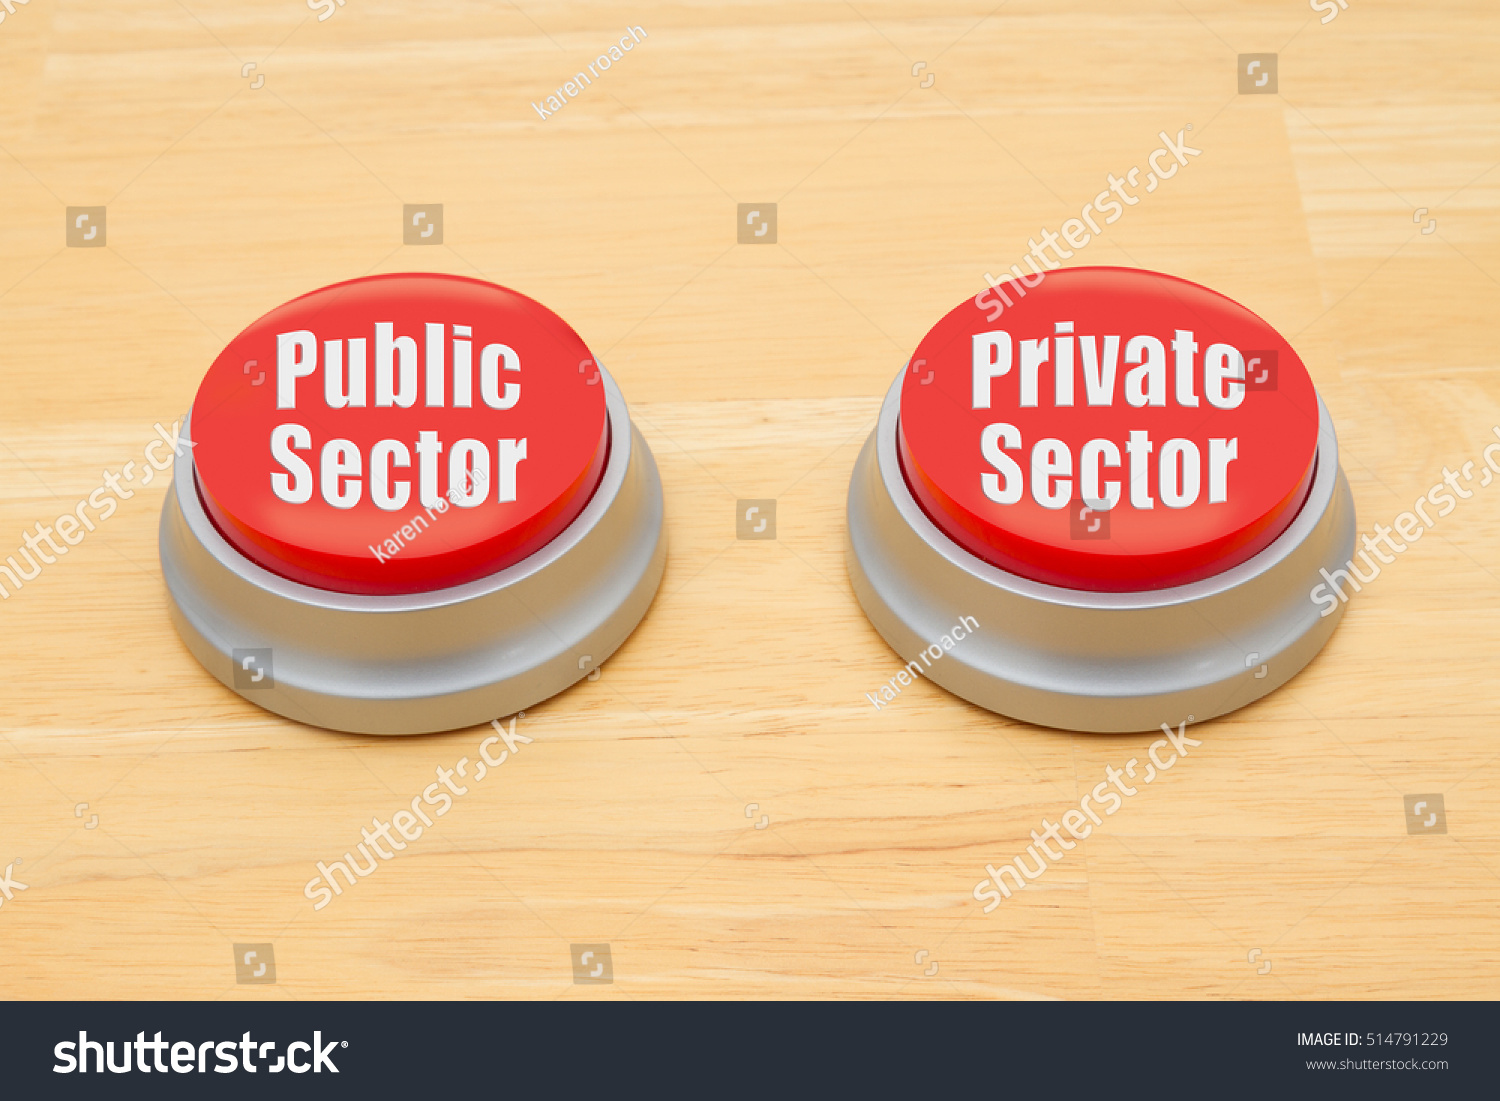 public sector and private sector difference